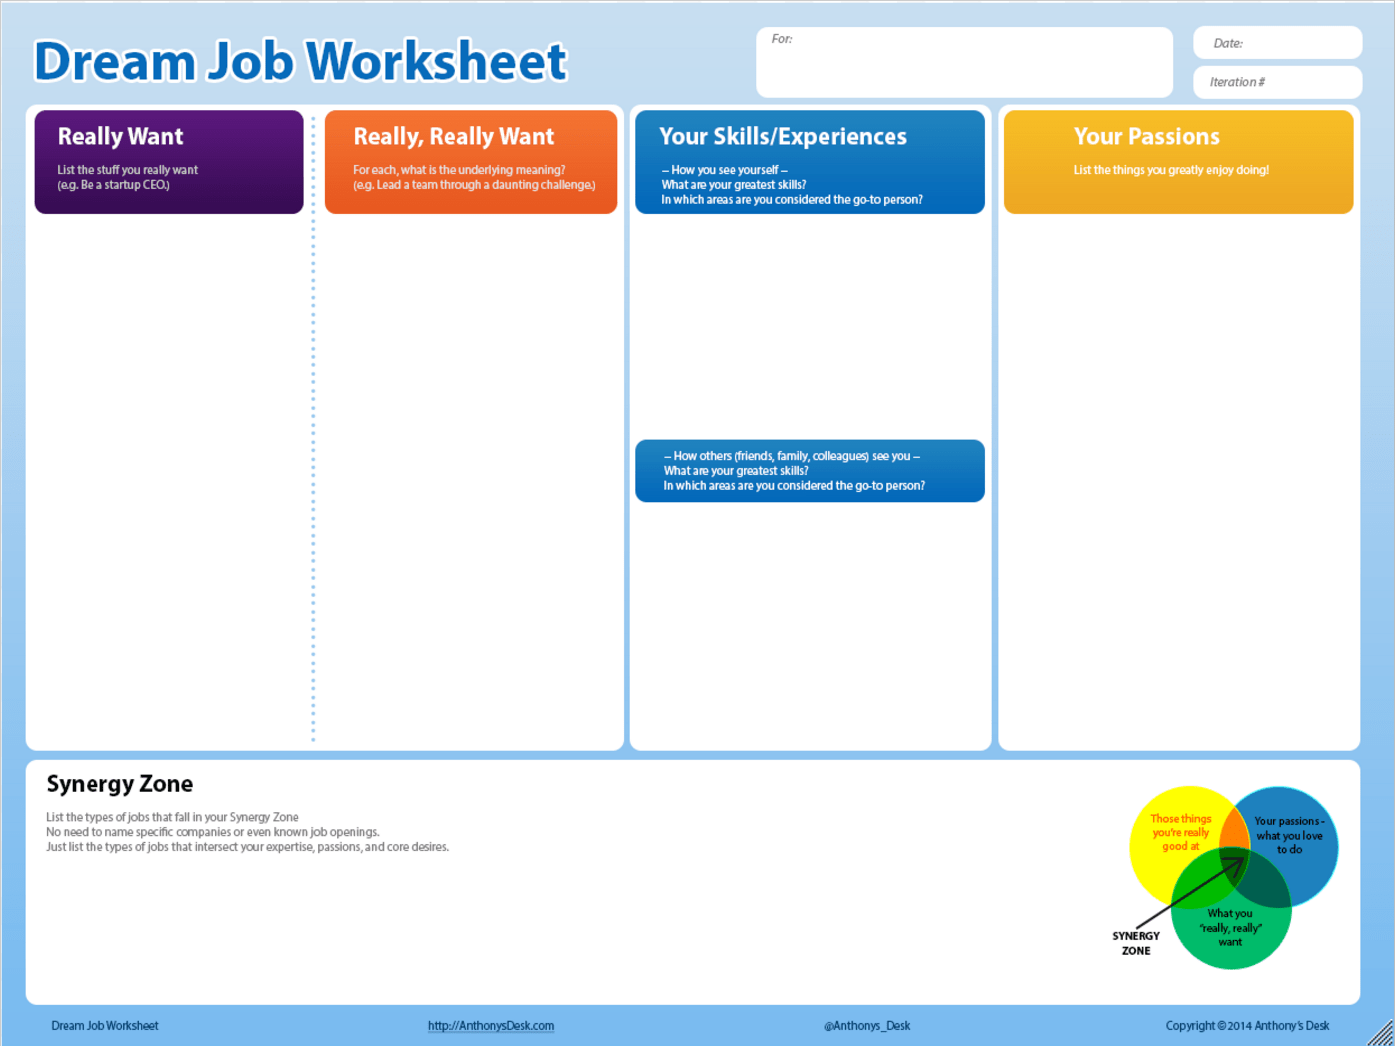 Dream Job Worksheet